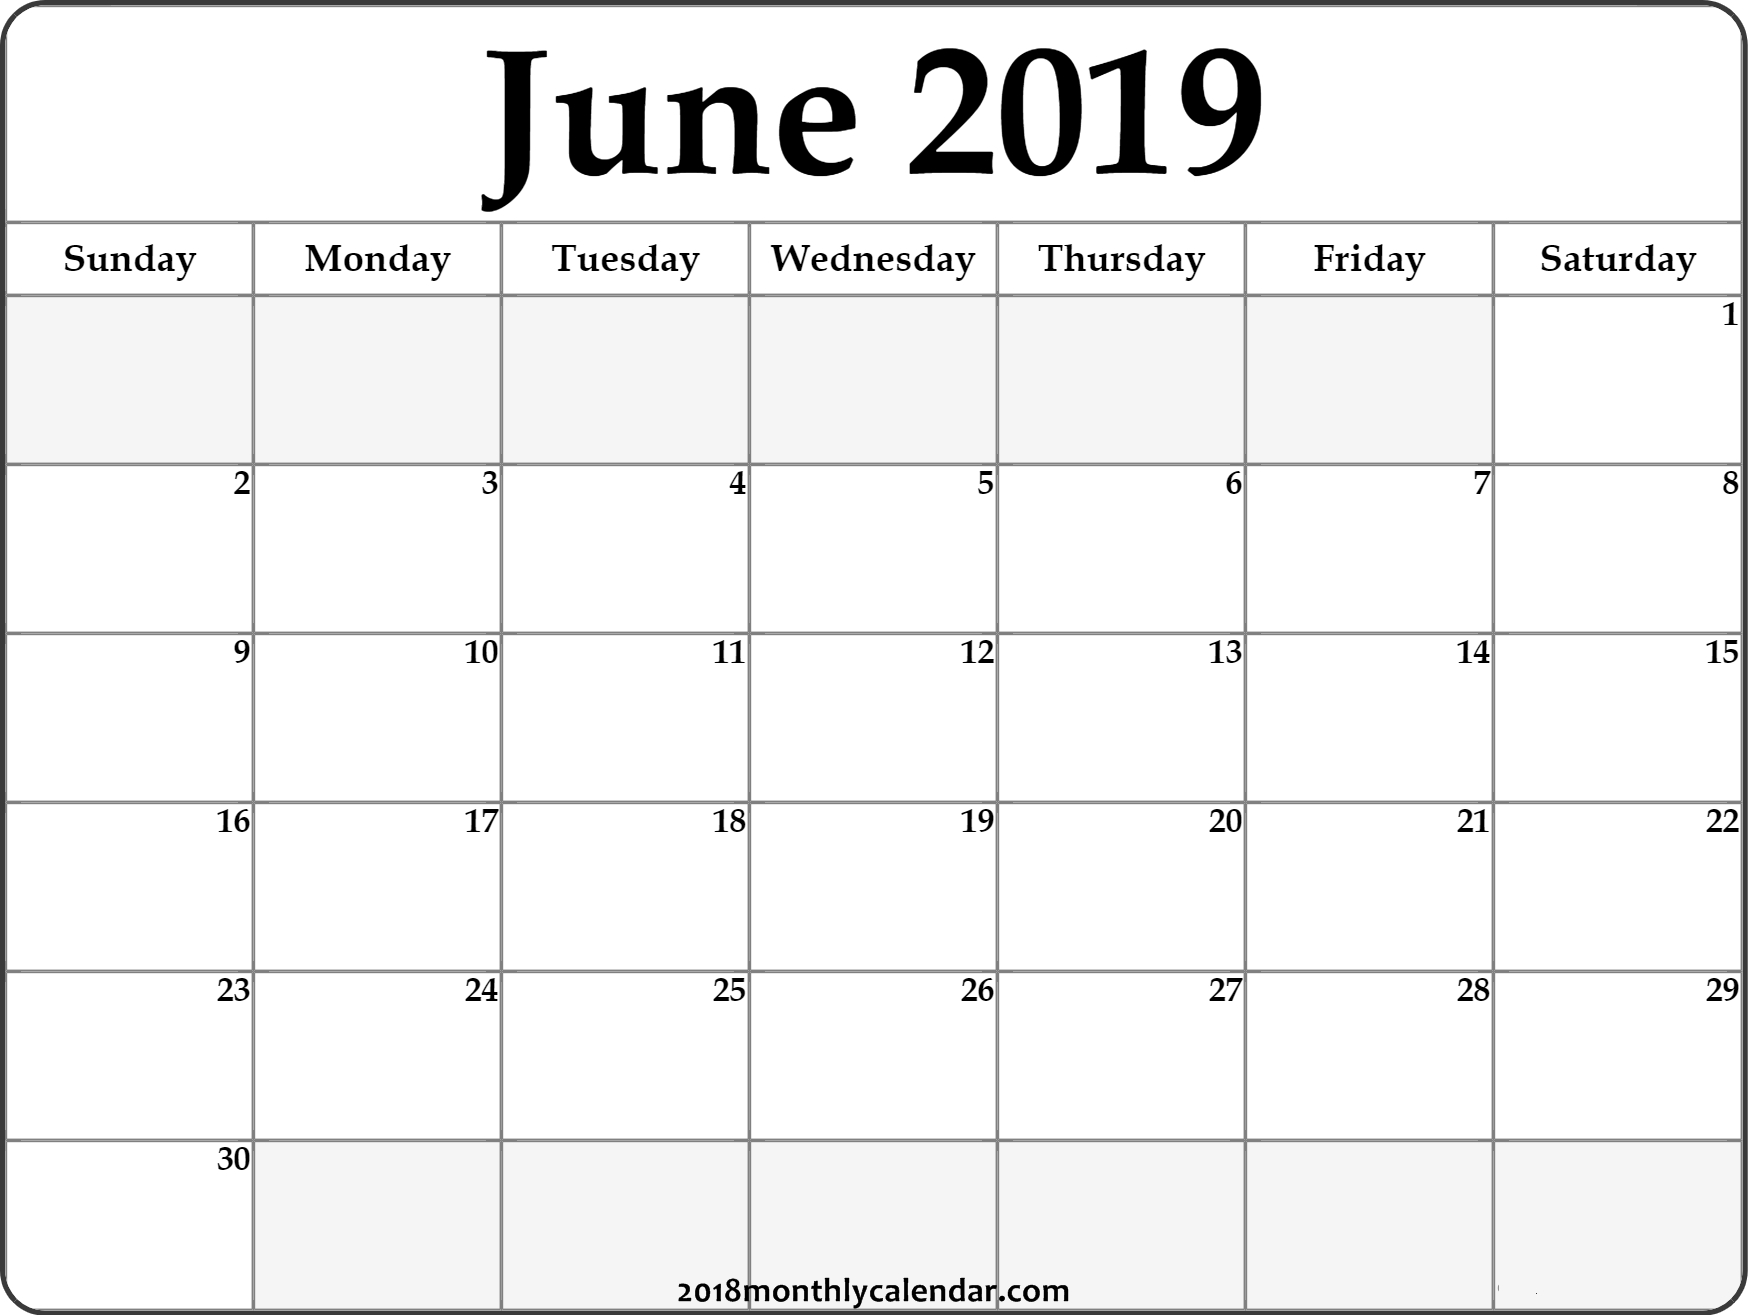 Download June 2019 Printable Calendar – Printable Blank & Editable Calendar 2019 June